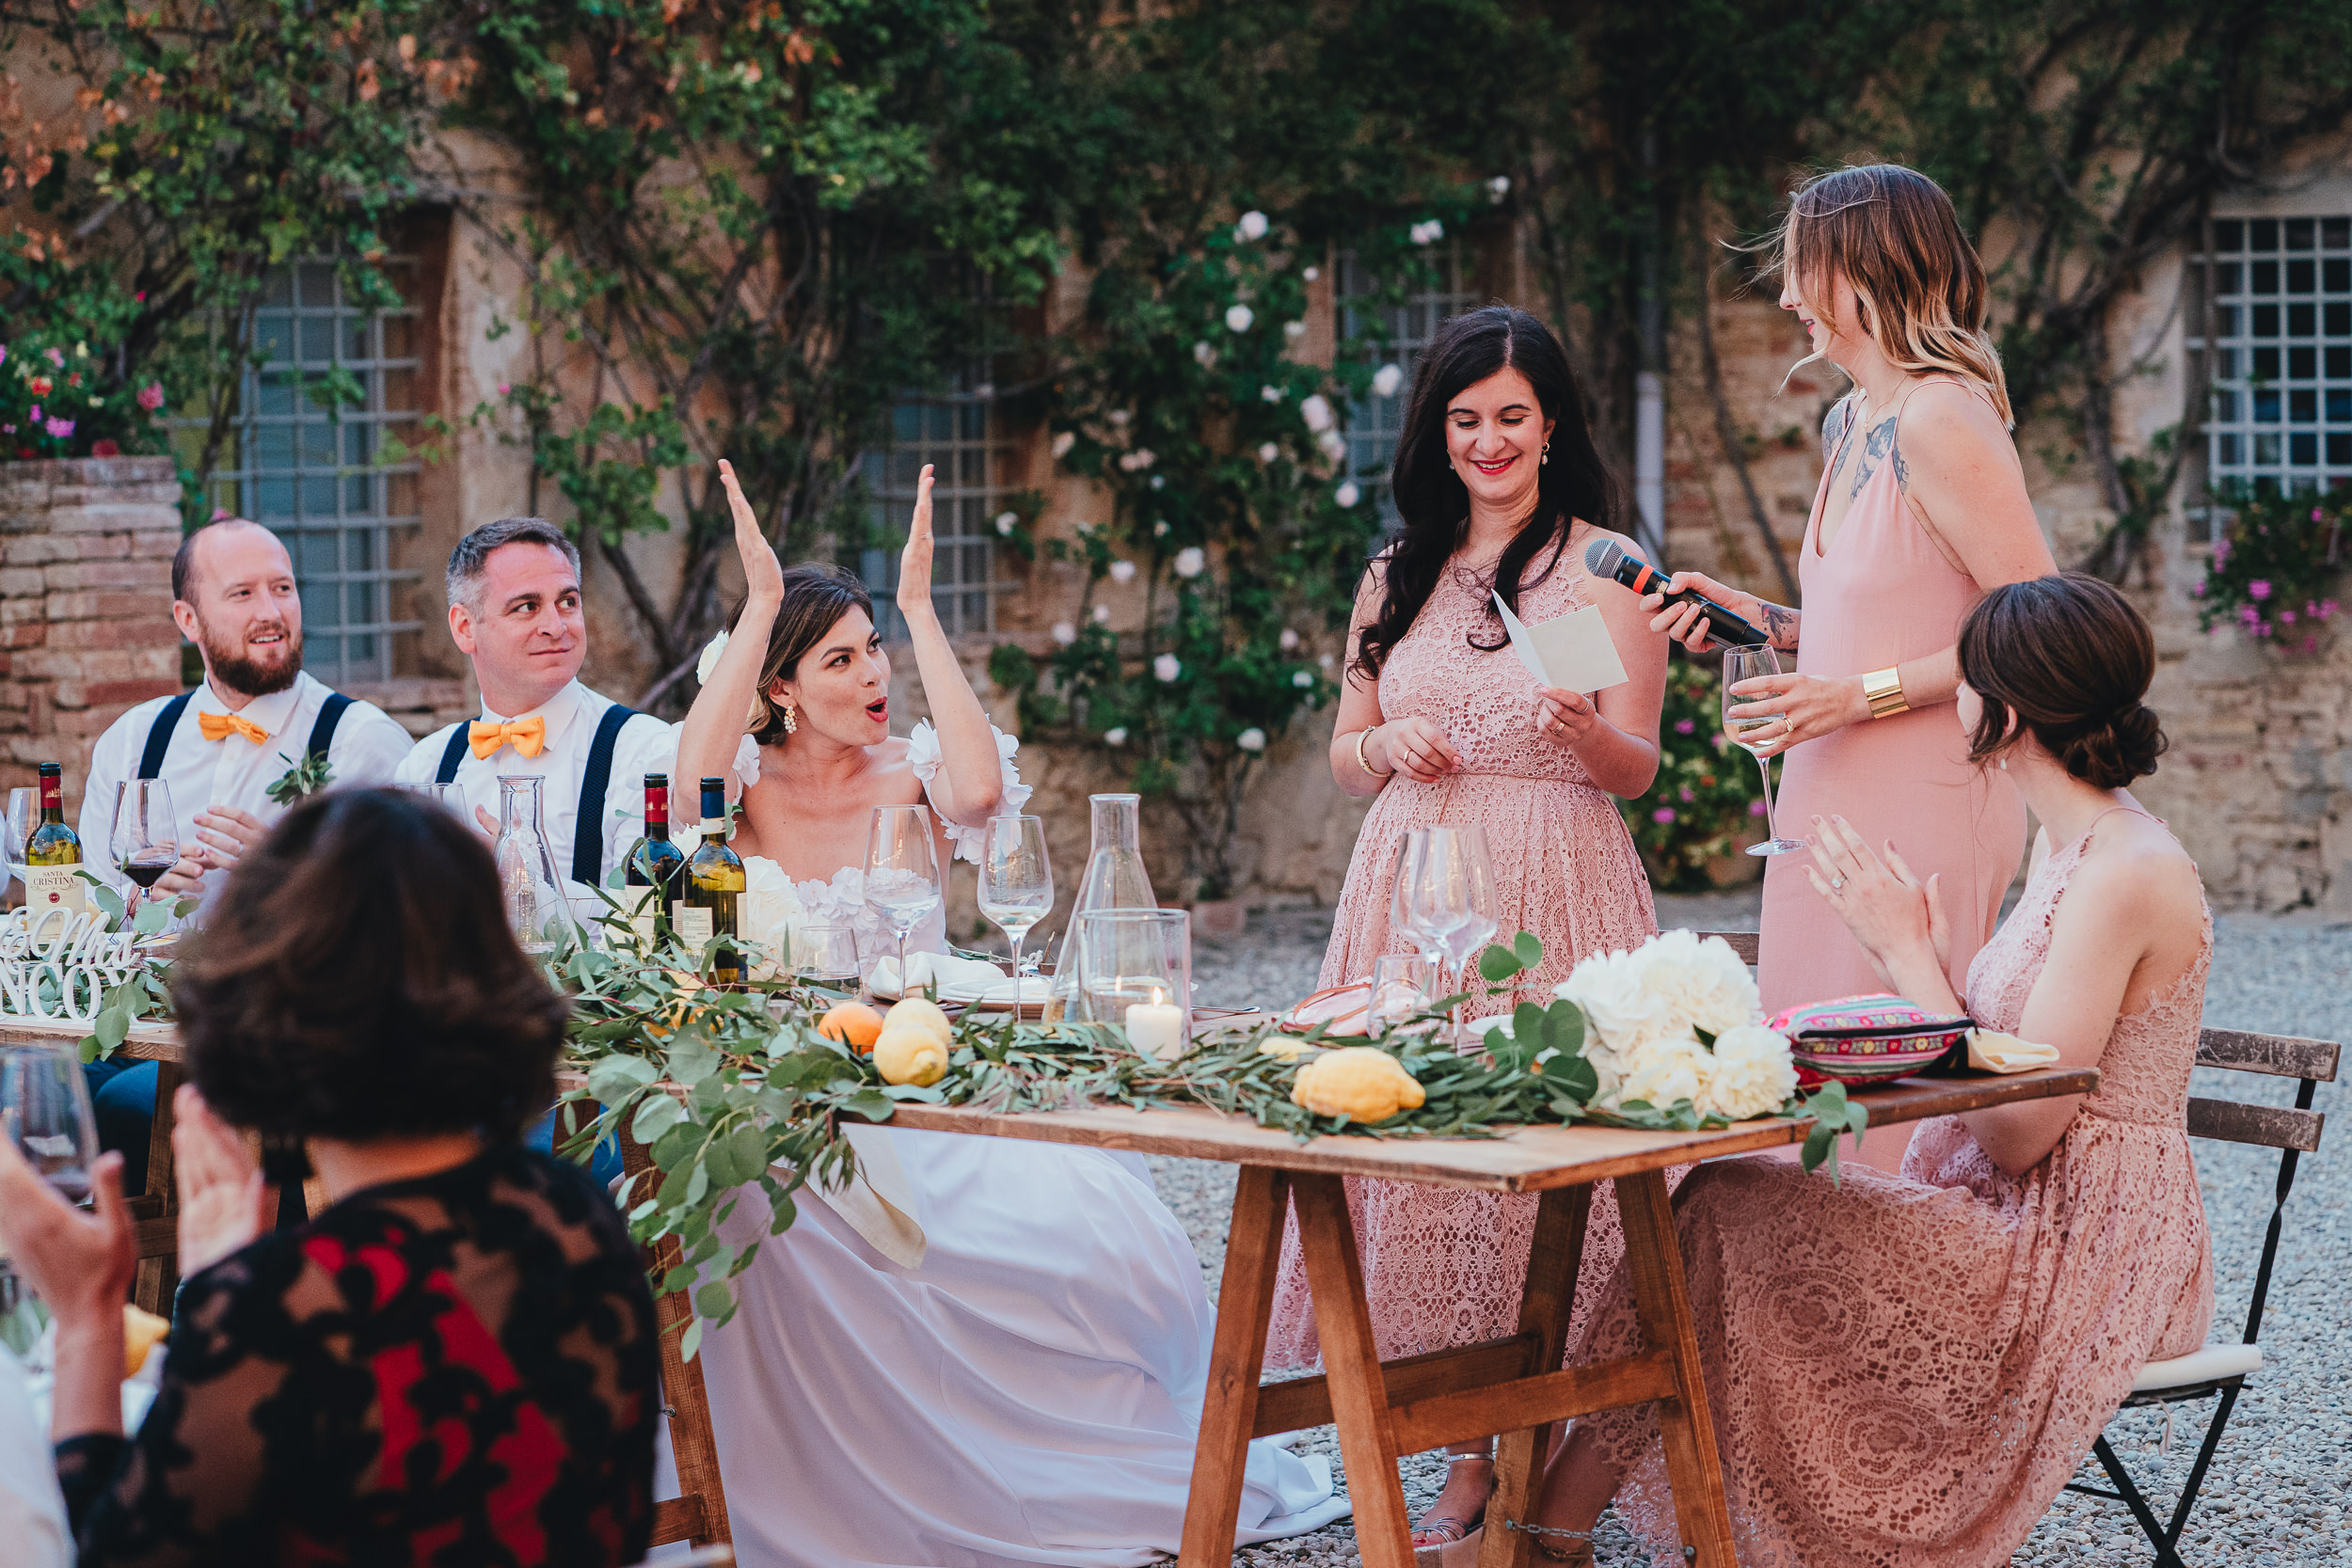 Tuscan Villa Wedding - The Bride applauds the Bridesmaid's speech